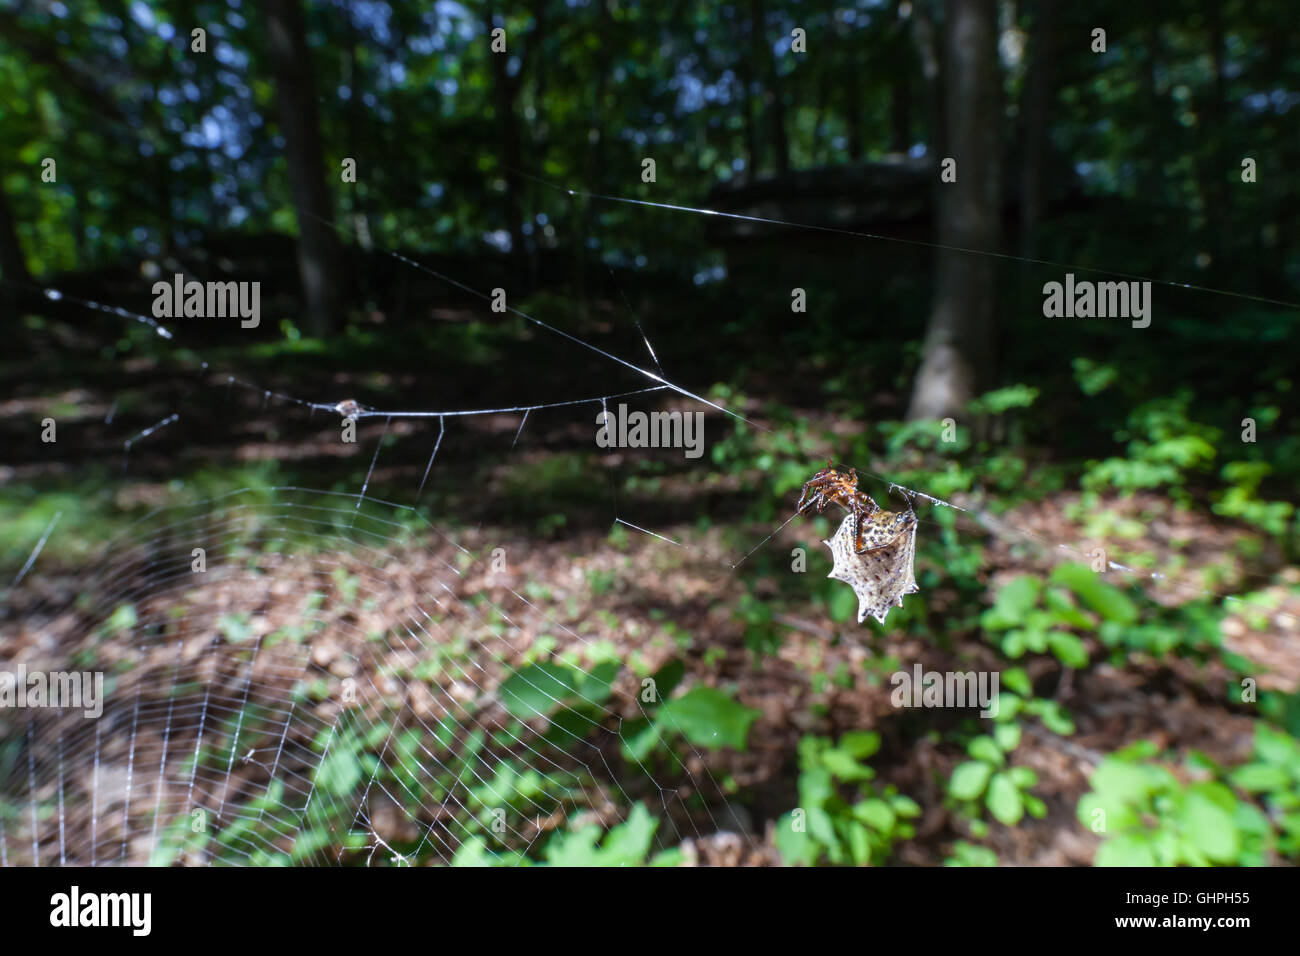 A female Spined Micrathena (Micrathena gracilis) waits for prey on her web at the edge of a forest. - Stock Image